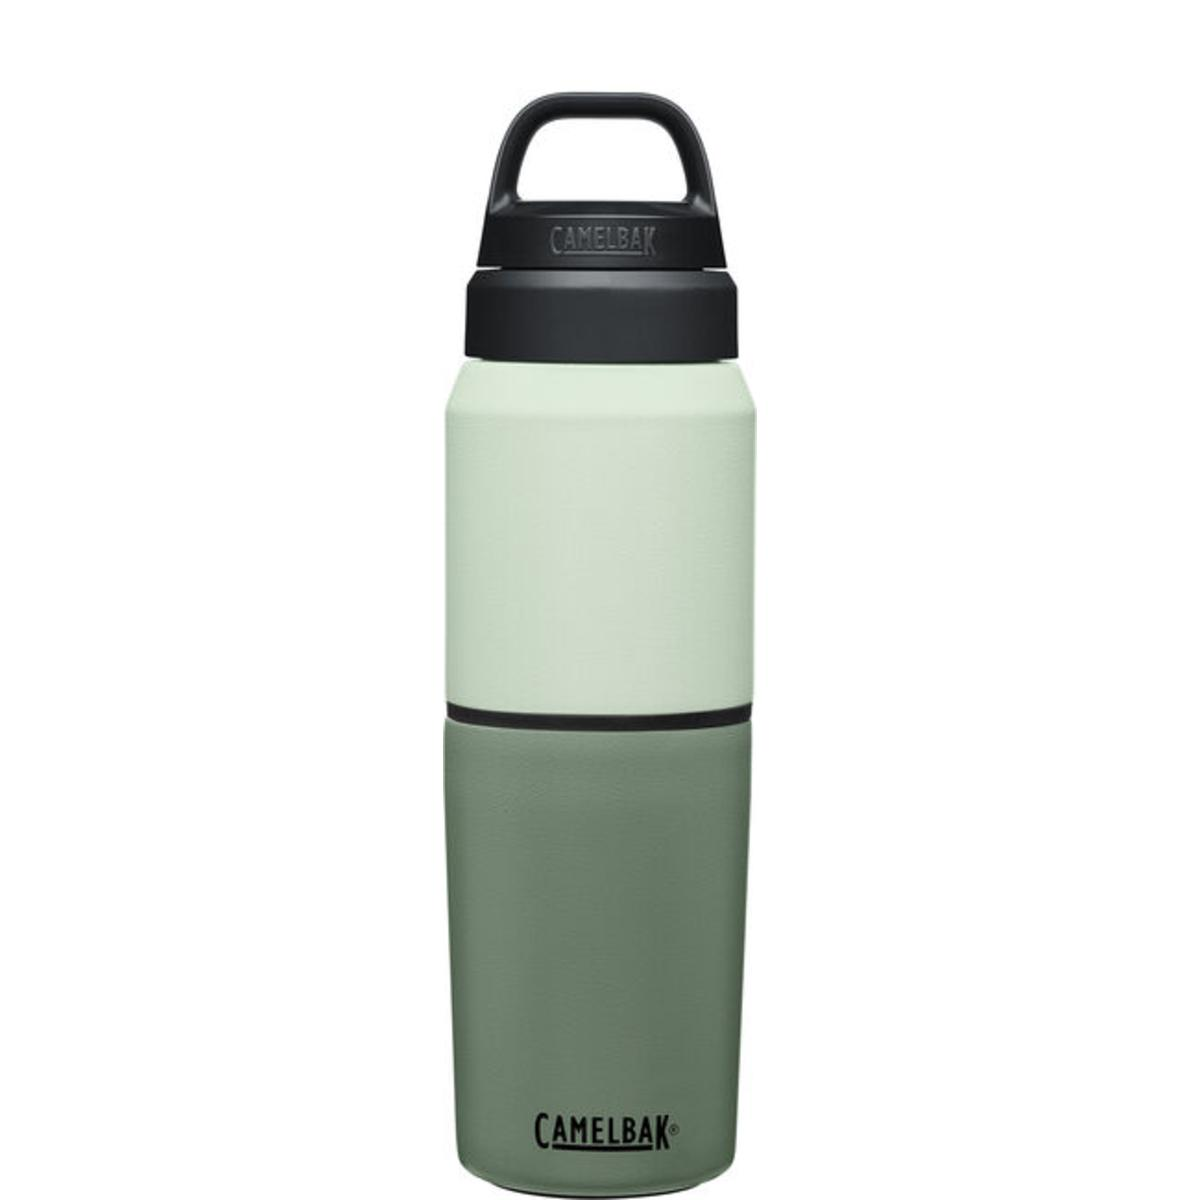 Camelbak MultiBev 17 oz Bottle / 12 oz Cup, Insulated Stainless Steel Water Bottle